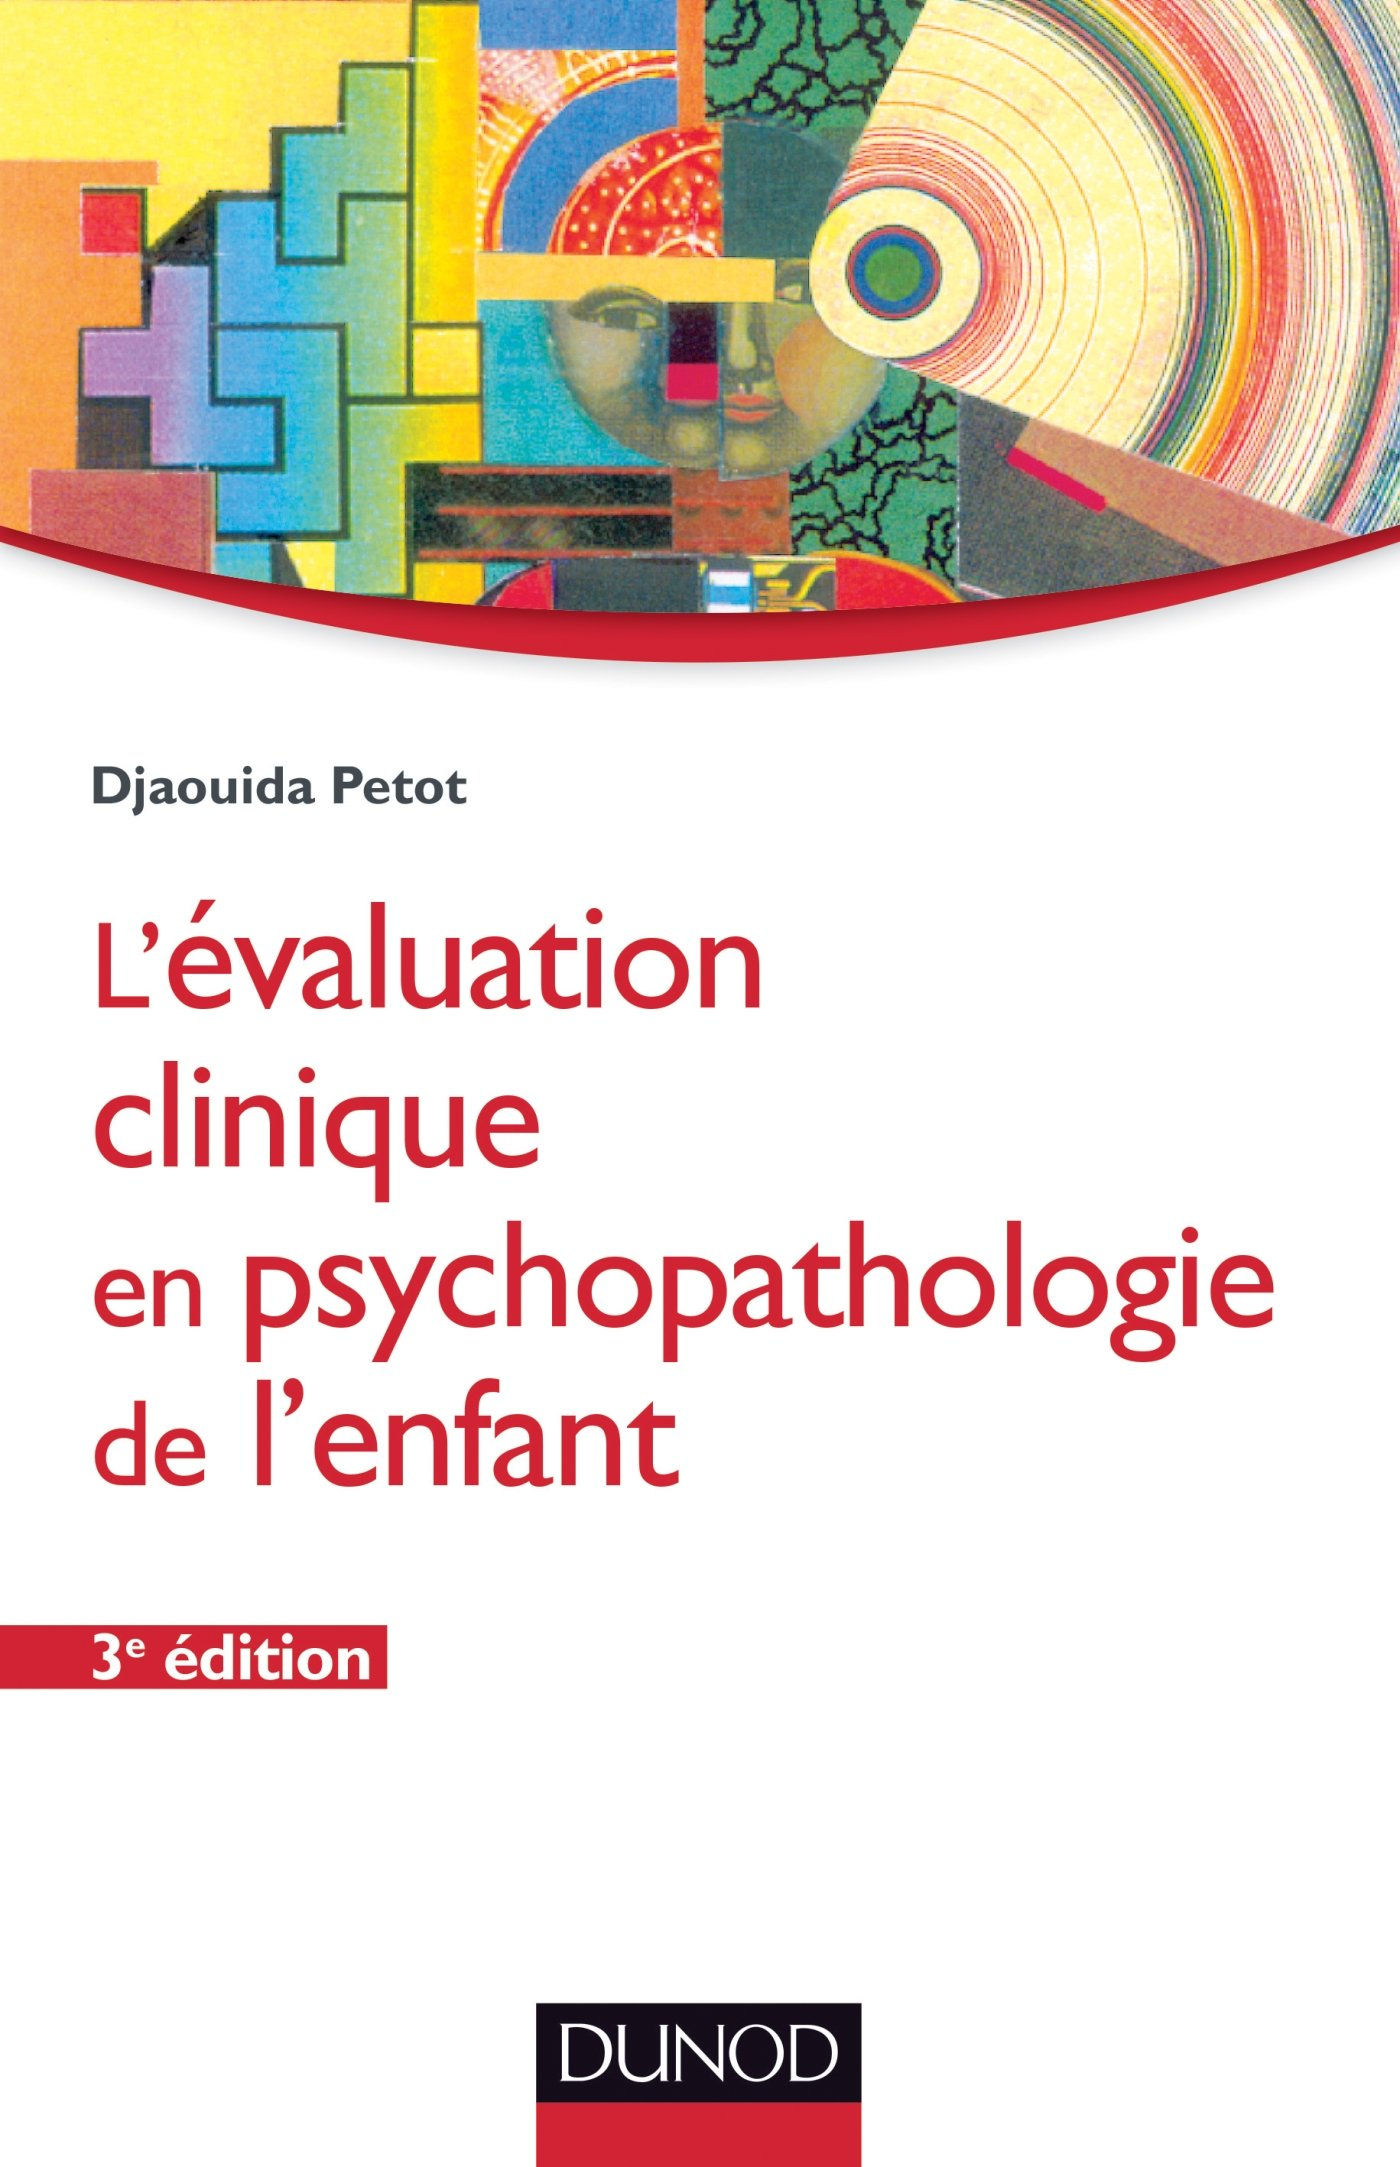 ÉVALUATION CLINIQUE EN PSYCHOPATHOLOGIE DE L'ENFANT 3E ÉD.: Amazon.ca:  Petot: Books